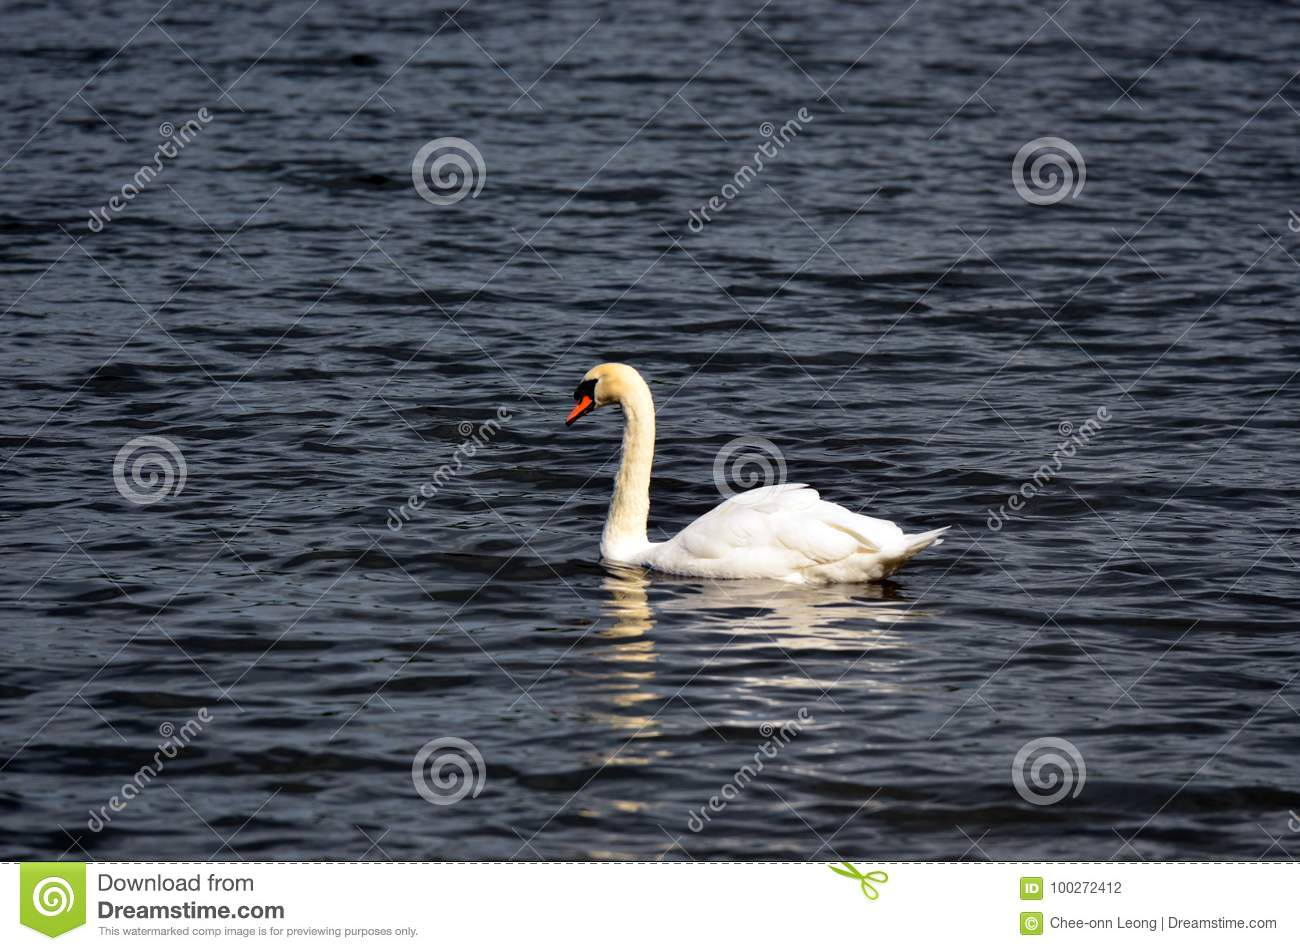 Stock image of Lake with a white swan